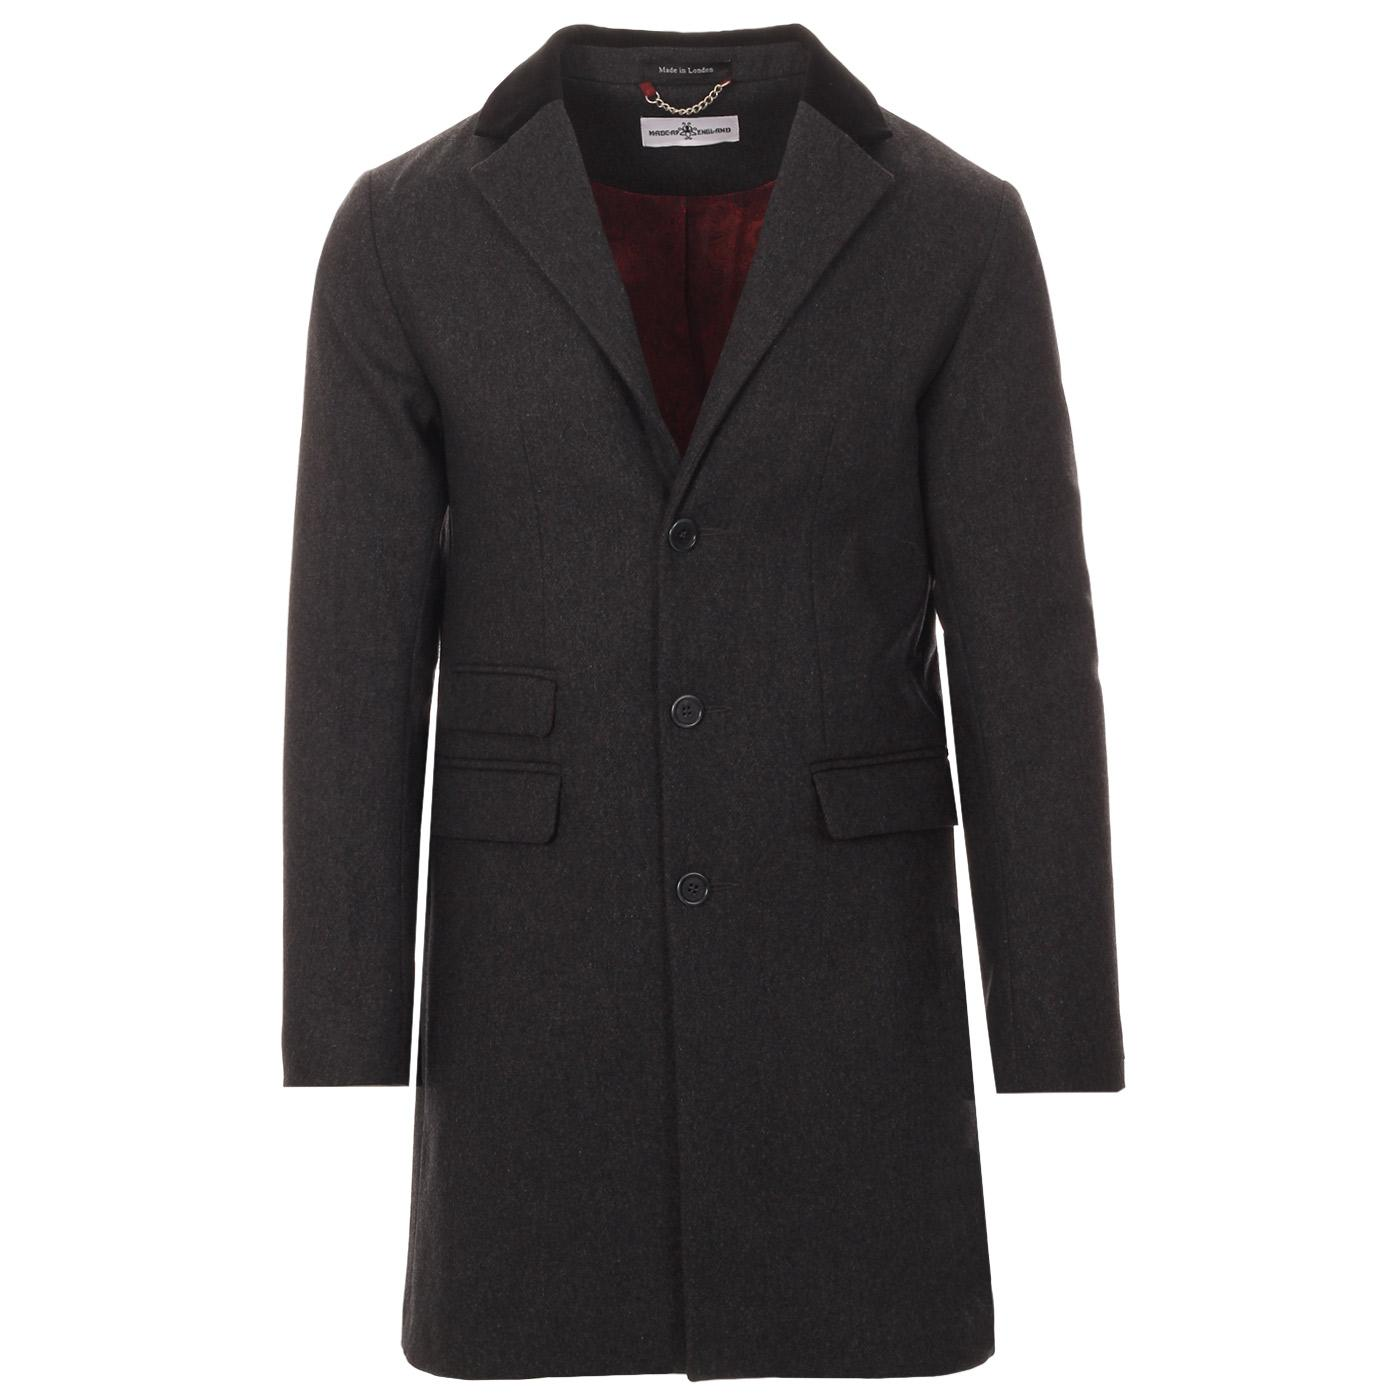 MADCAP ENGLAND Made in England Mod Covert Coat (G)